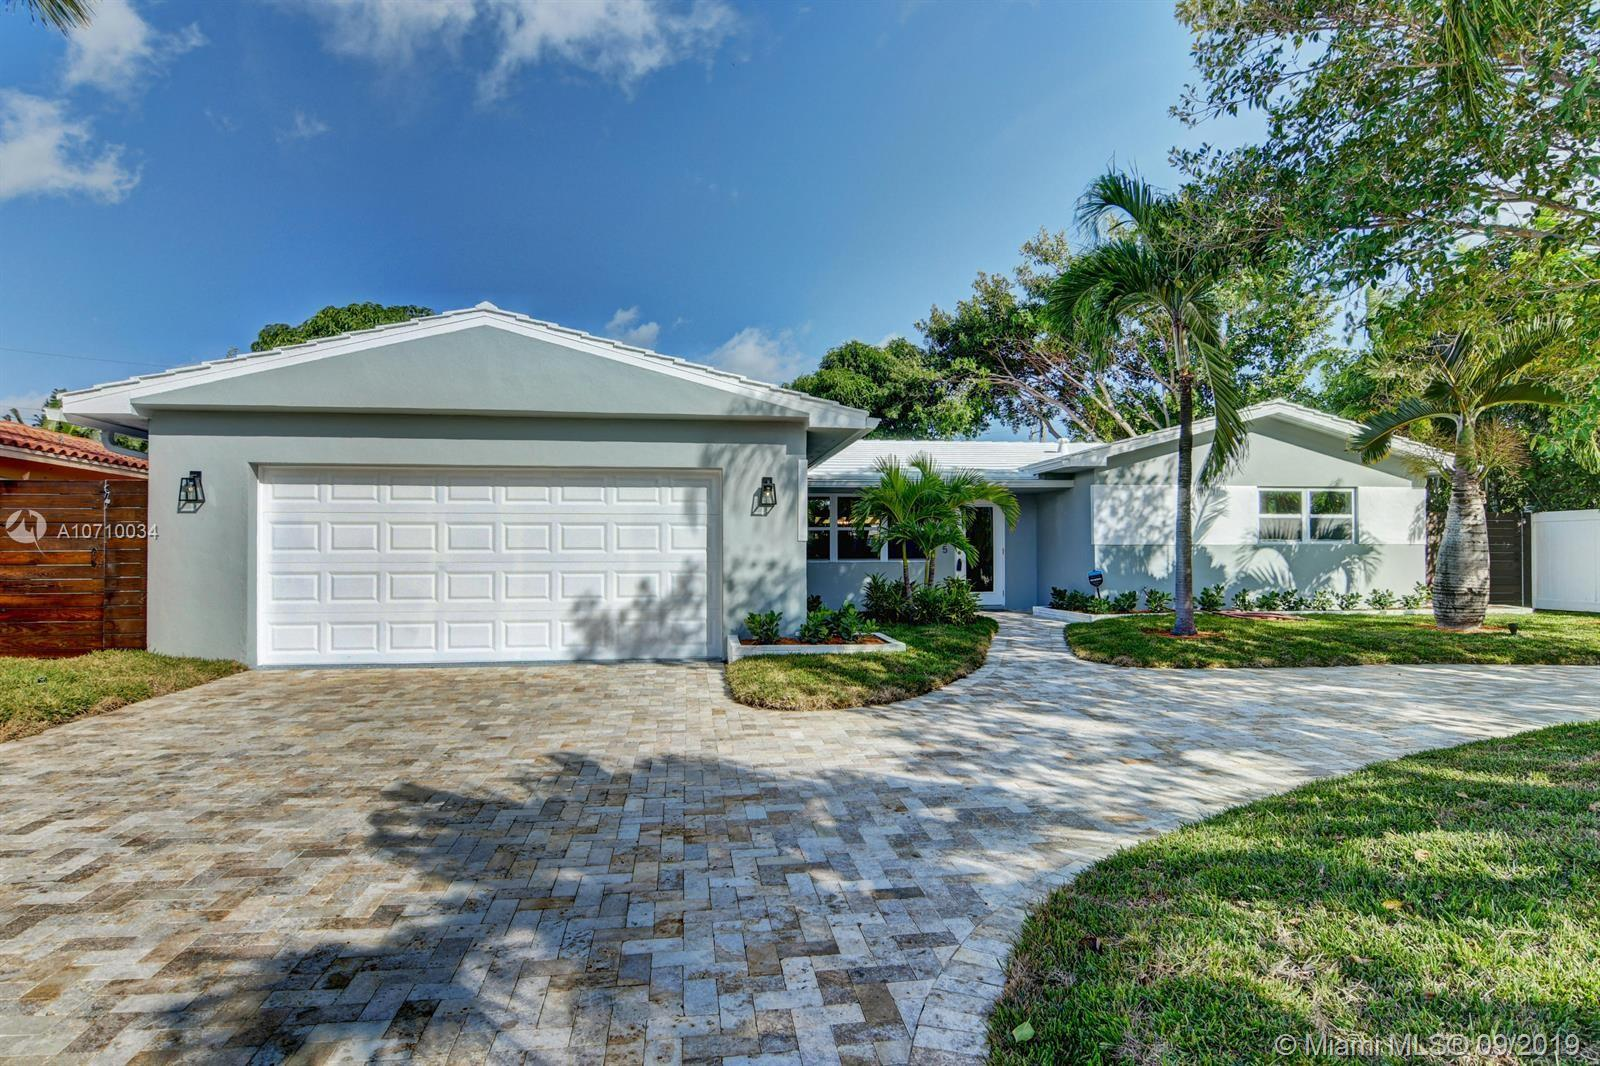 2025 Windward Dr 33062 - One of Lauderdale by the Sea Homes for Sale